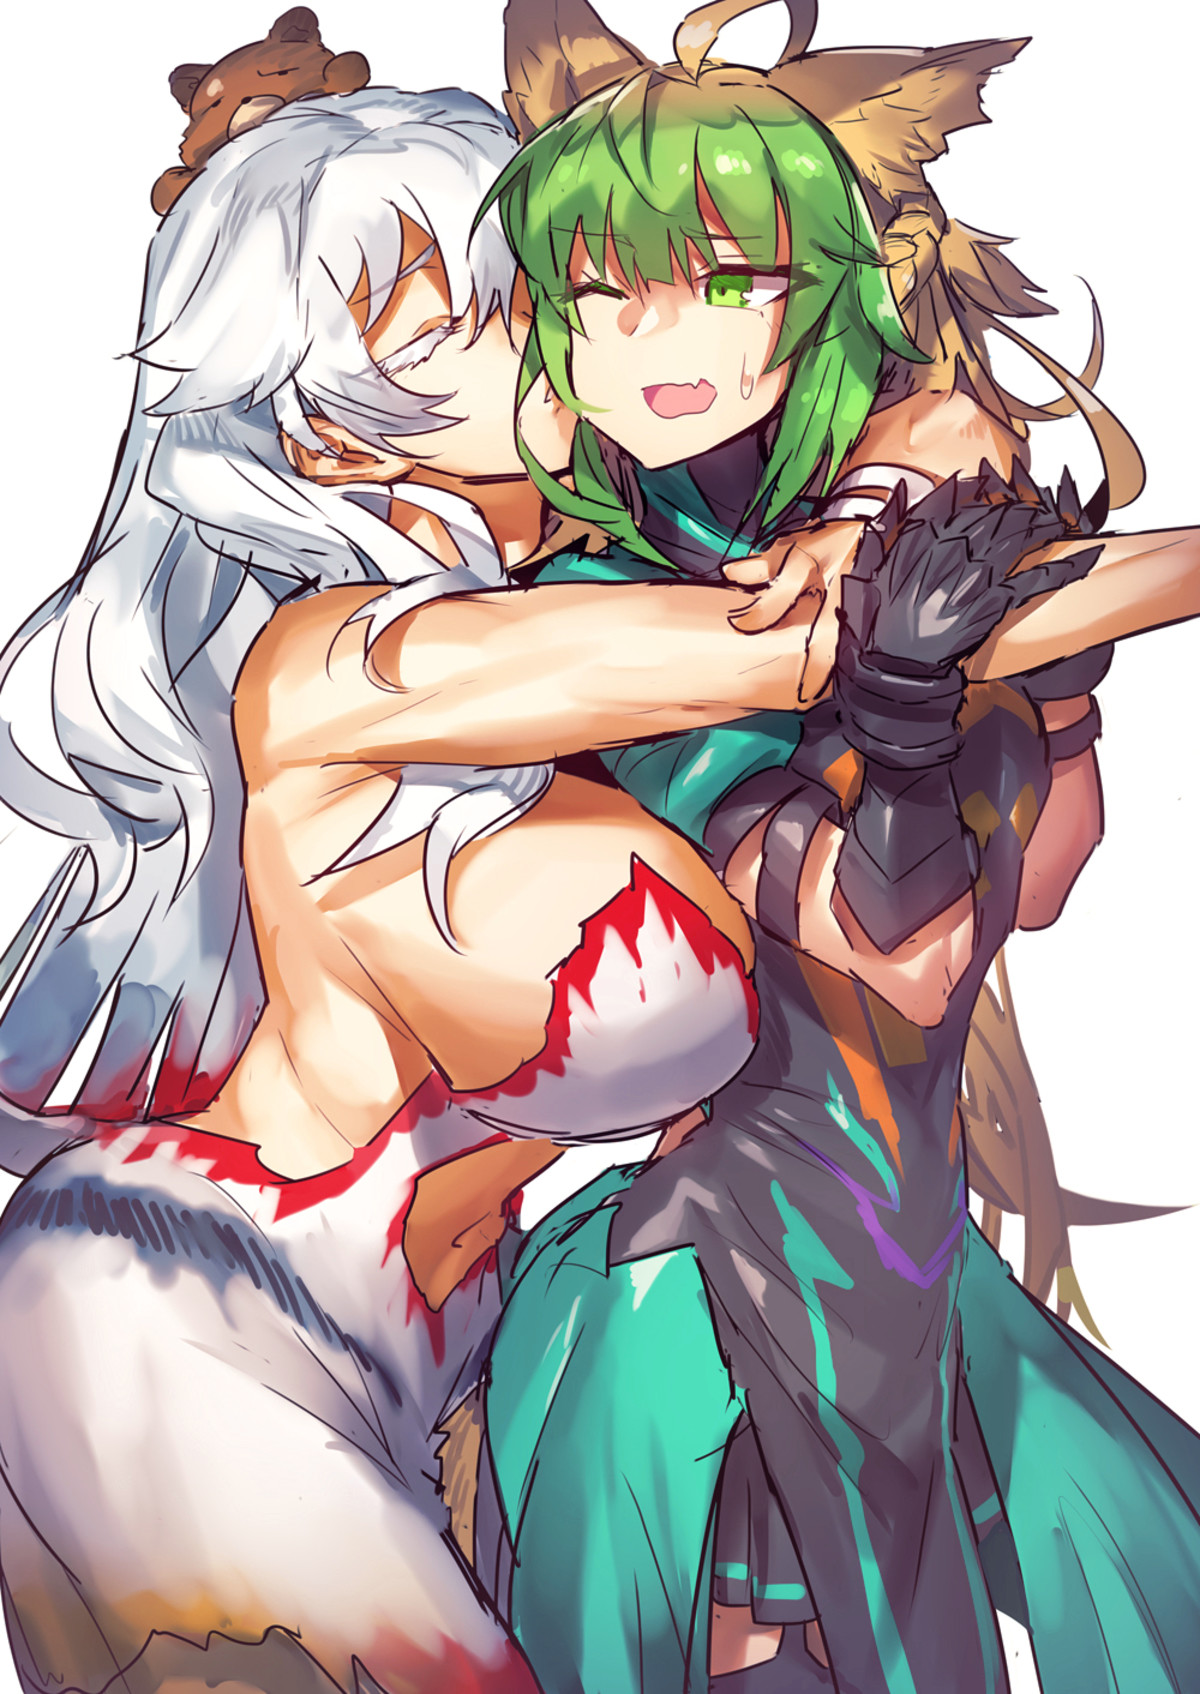 Mother & Daughter. Source illust.php?mode=medium&illustid=71095859 join list: Fate (421 subs)Mention History join list:. Ayodasgaymane.mp4 join list: MumsAndMomDomsMention History